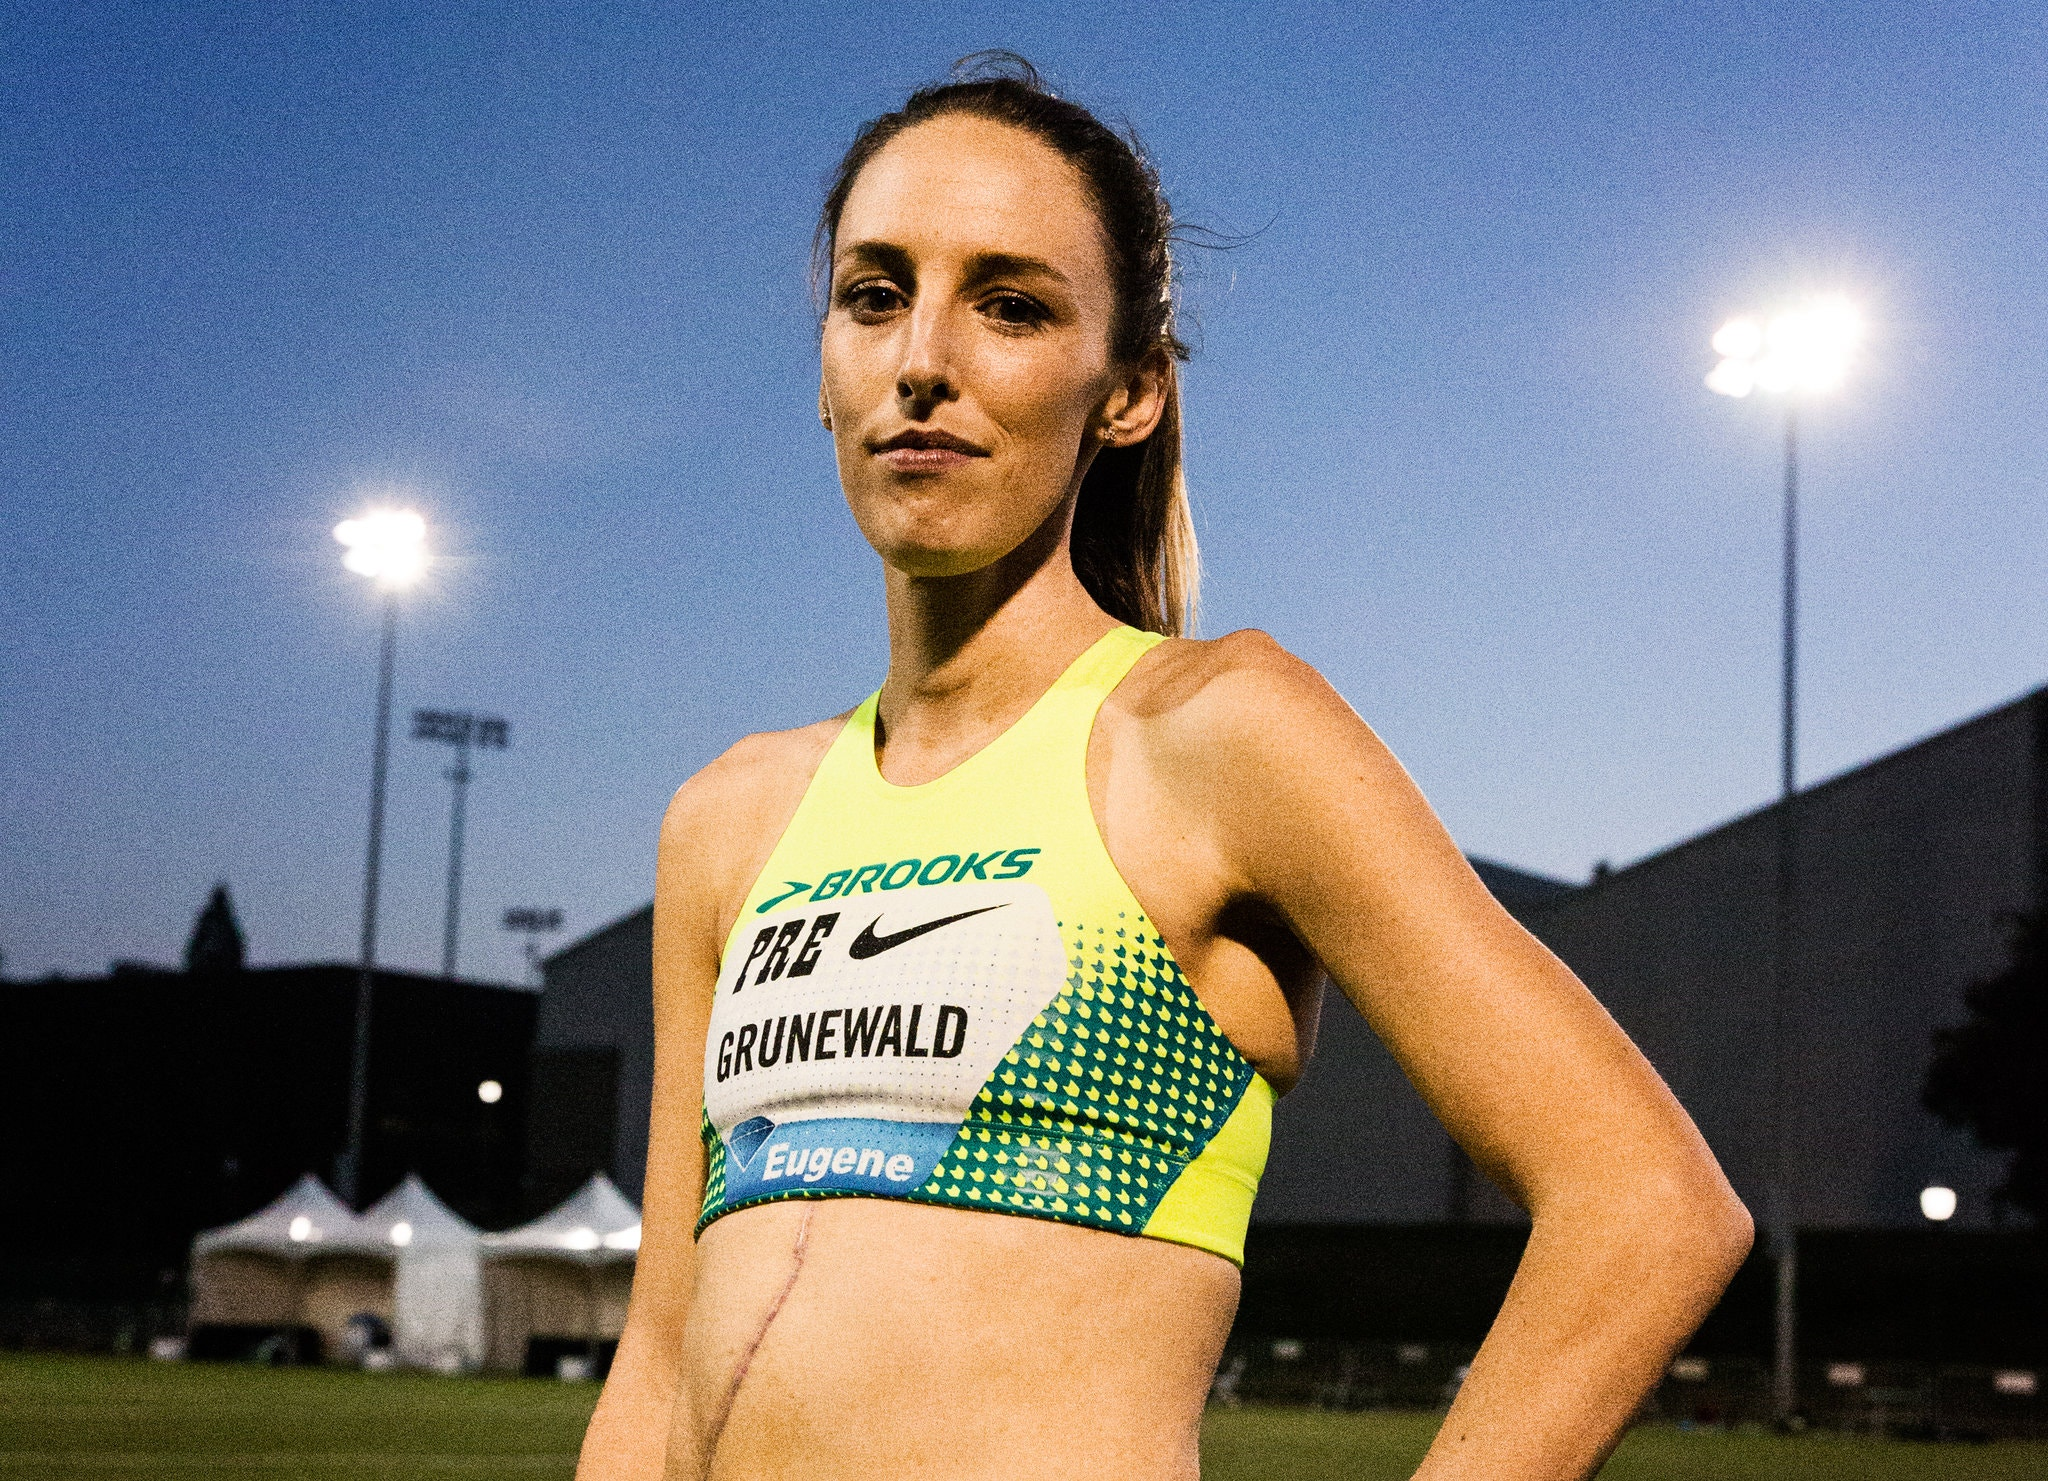 Gabriele Grunewald, Runner Who Chronicled Journey With Cancer, Dies at 32